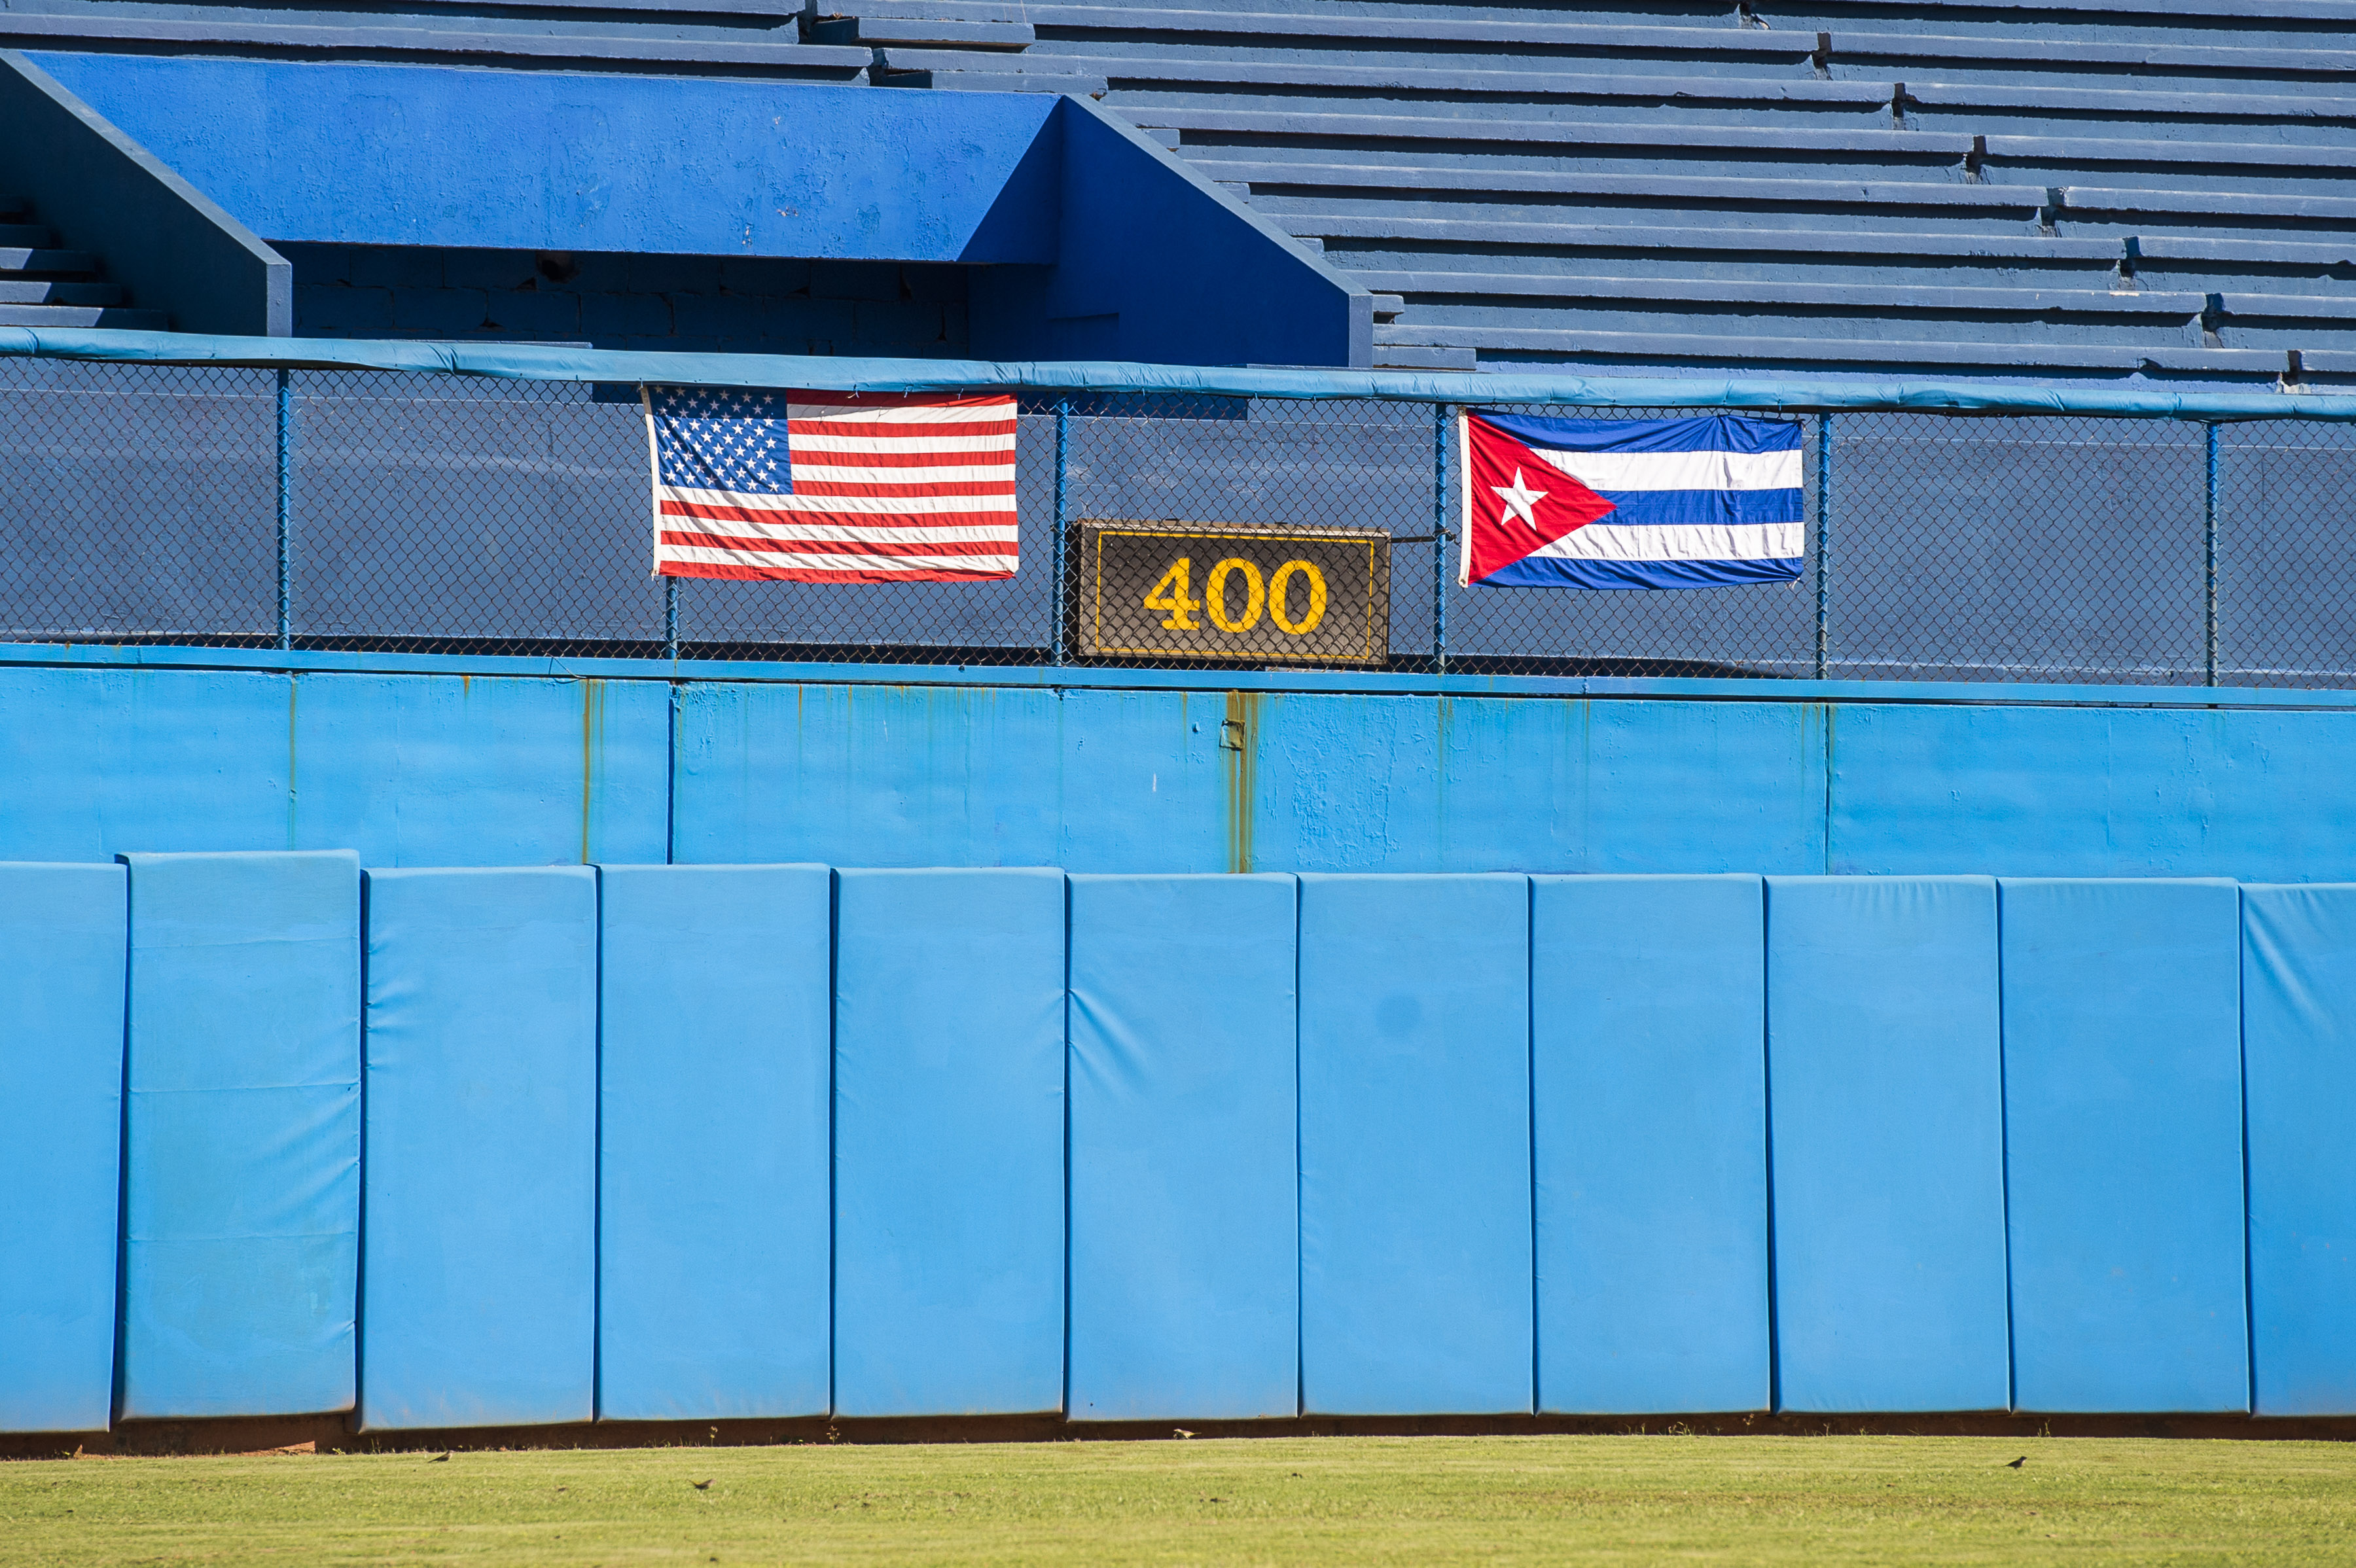 An American flag and Cuban flag are seen in Estadio Latinoamericano during an MLB goodwill tour on Tuesday, Dec. 16, 2015 in Havana, Cuba